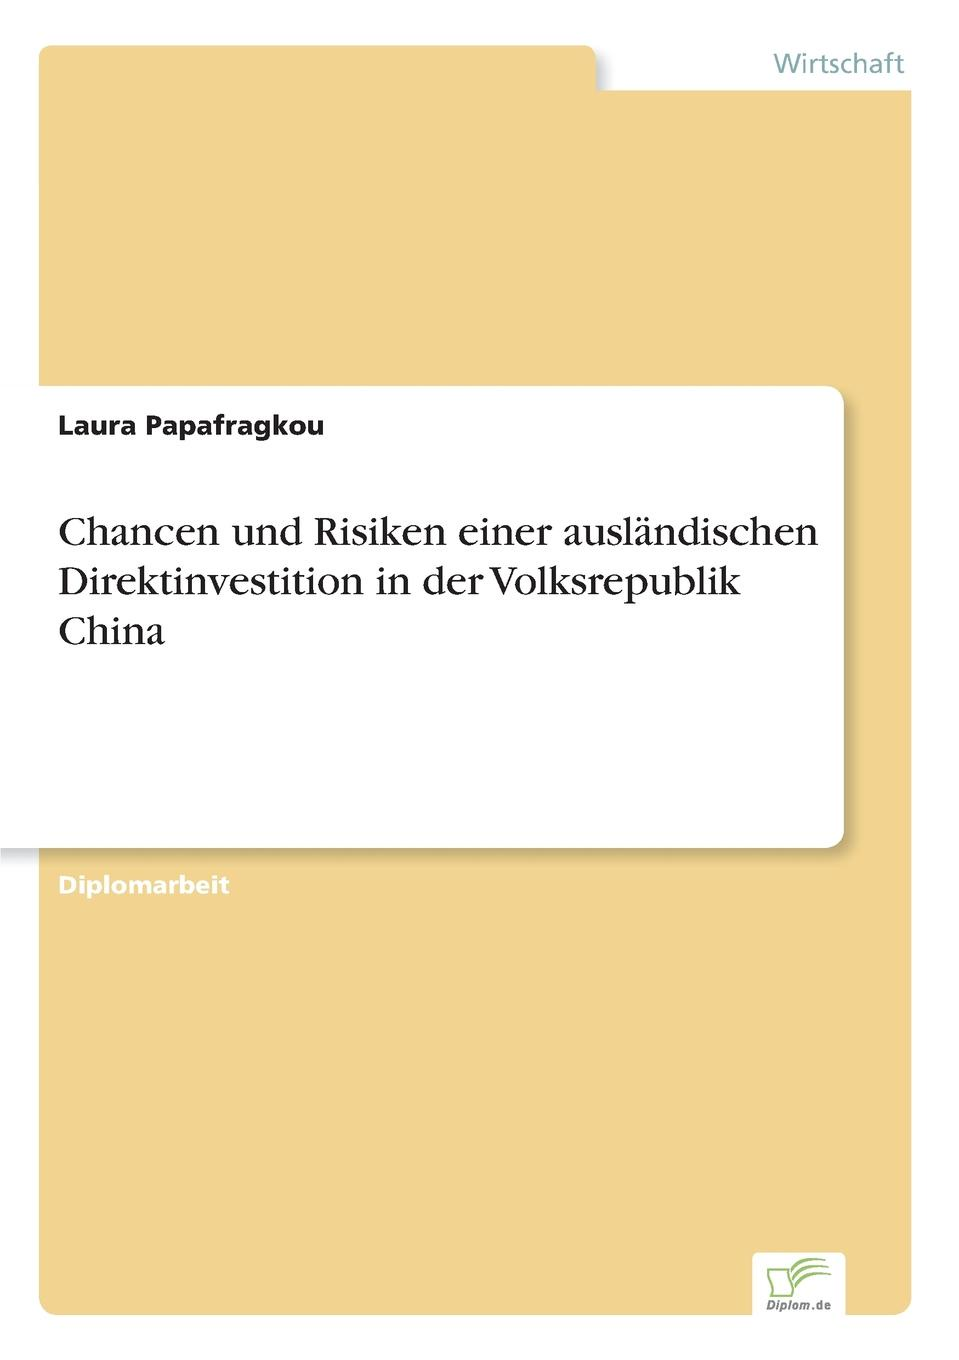 Laura Papafragkou Chancen und Risiken einer auslandischen Direktinvestition in der Volksrepublik China melchior ballreich kapitalmarktentwicklung und credit rating in der volksrepublik china